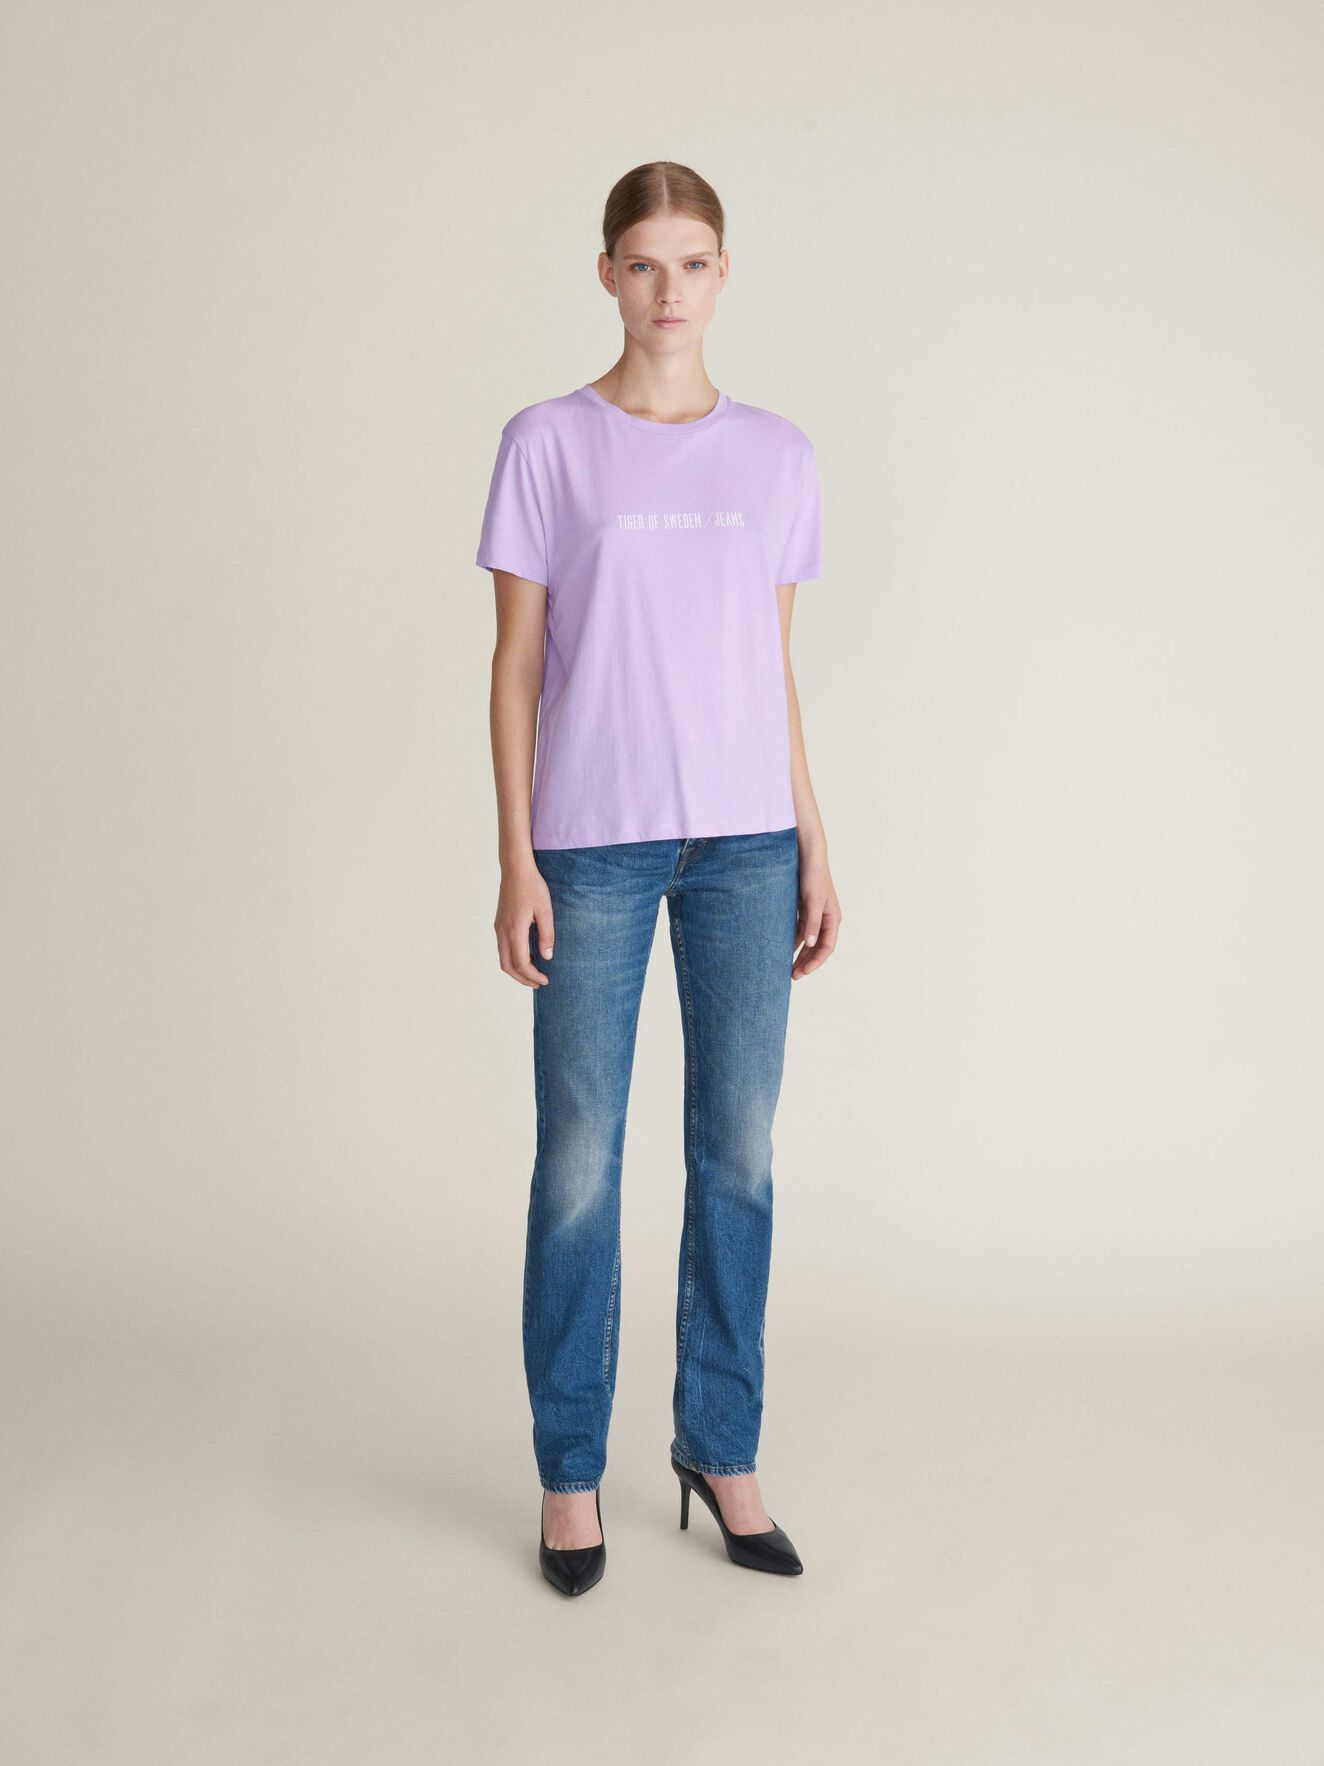 Dawn Pr T-Shirt in Lilac Breeze from Tiger of Sweden